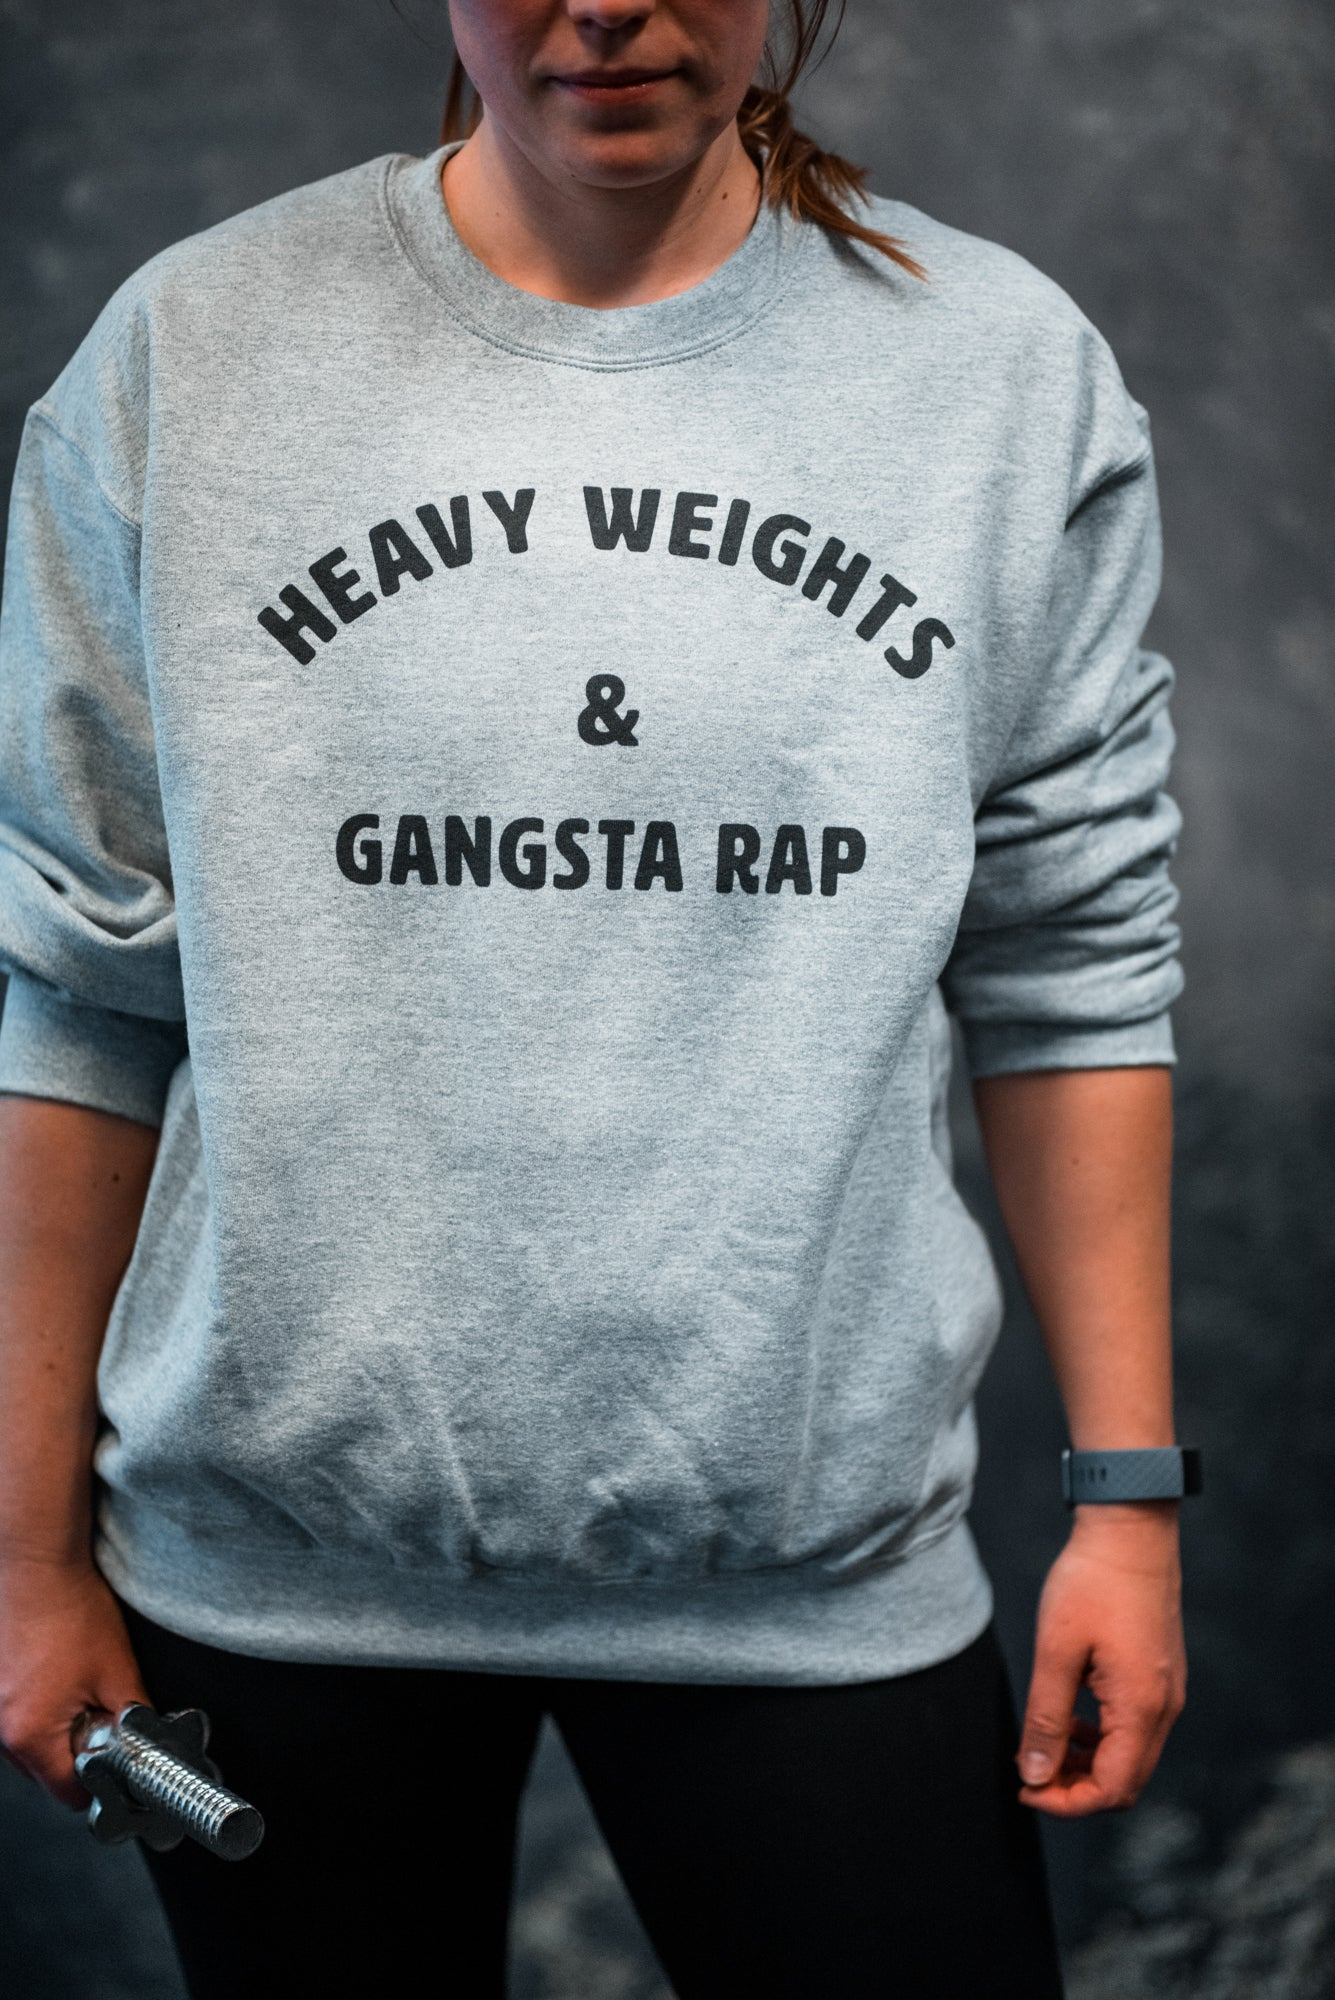 Heavy Weights & Gangsta Rap Women's Sweatshirt Grey-Dumb & Dumbbell